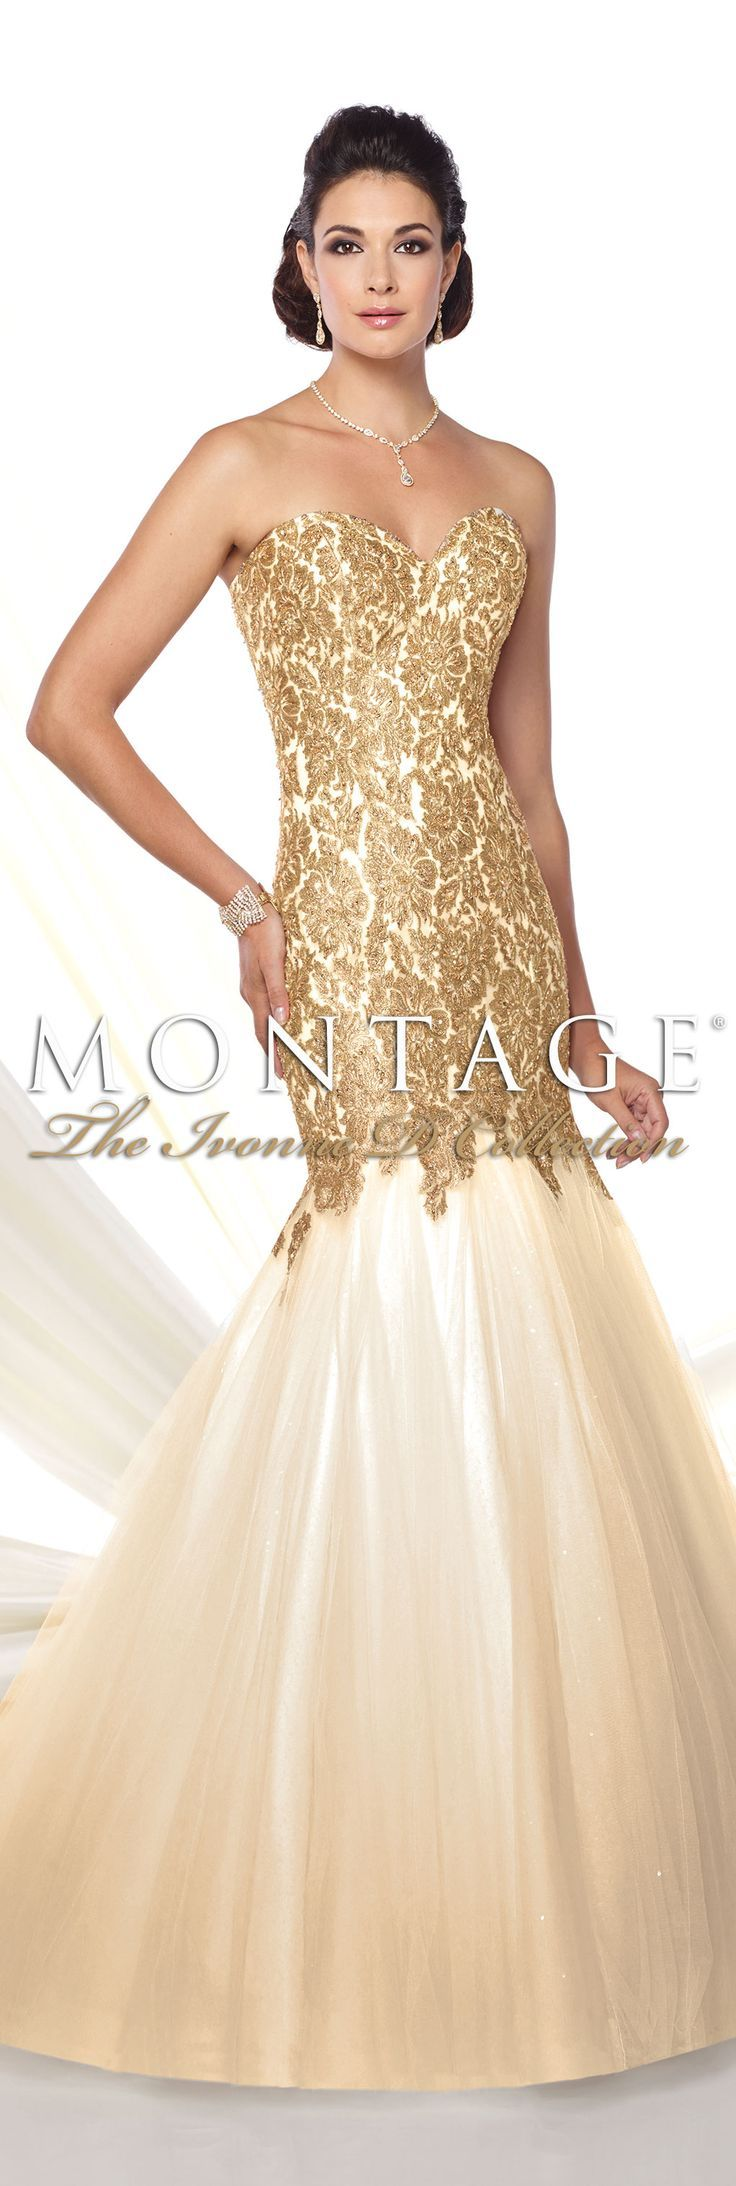 Montage The Ivonne D Collection Spring 2016 - Style No. 116D21 #eveninggowns